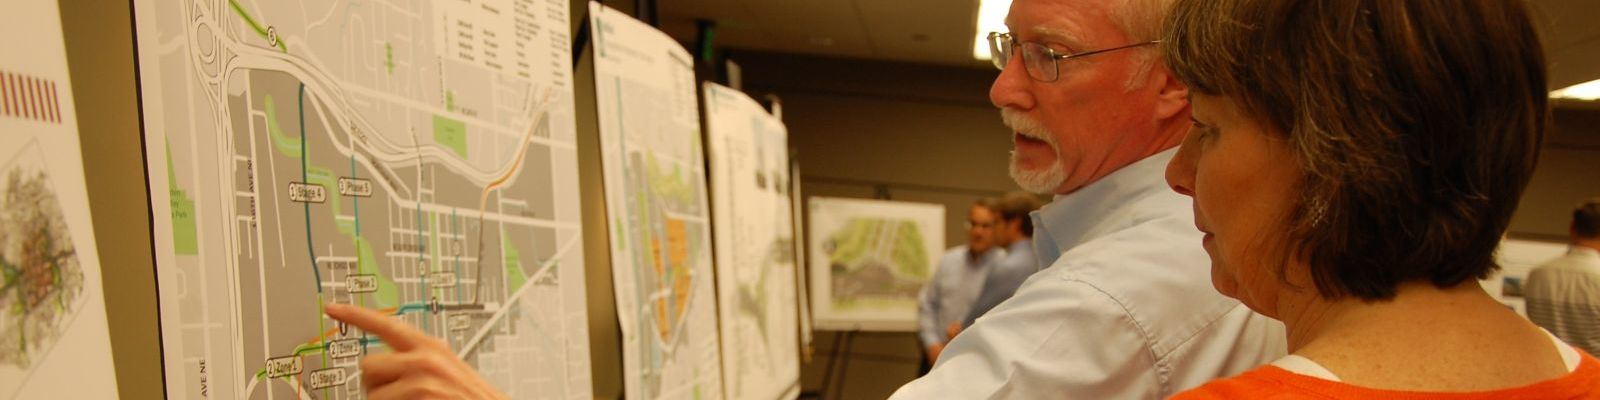 planning-map-open-house-1600x400.jpg